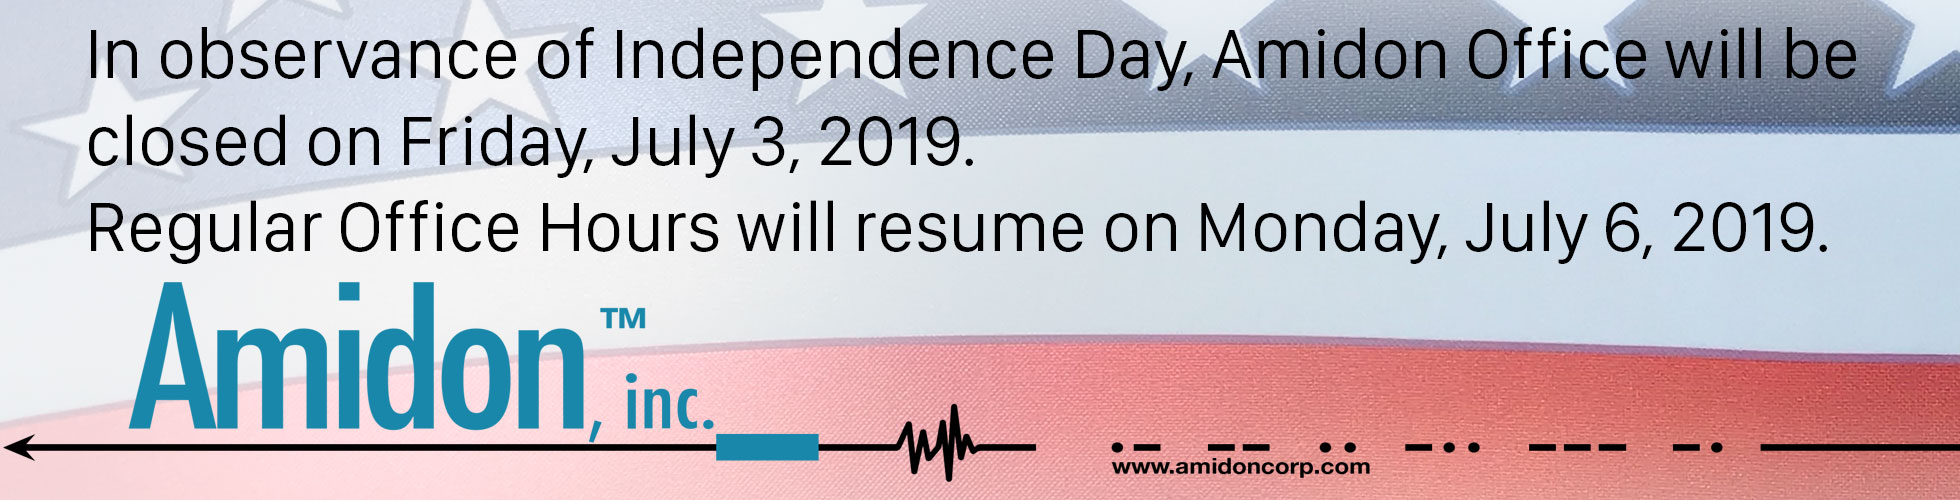 In observance of Independence Day, Amidon Office will be closed on Friday, July 3, 2019. Regular Office Hours will resume on Monday, July 6, 2019.